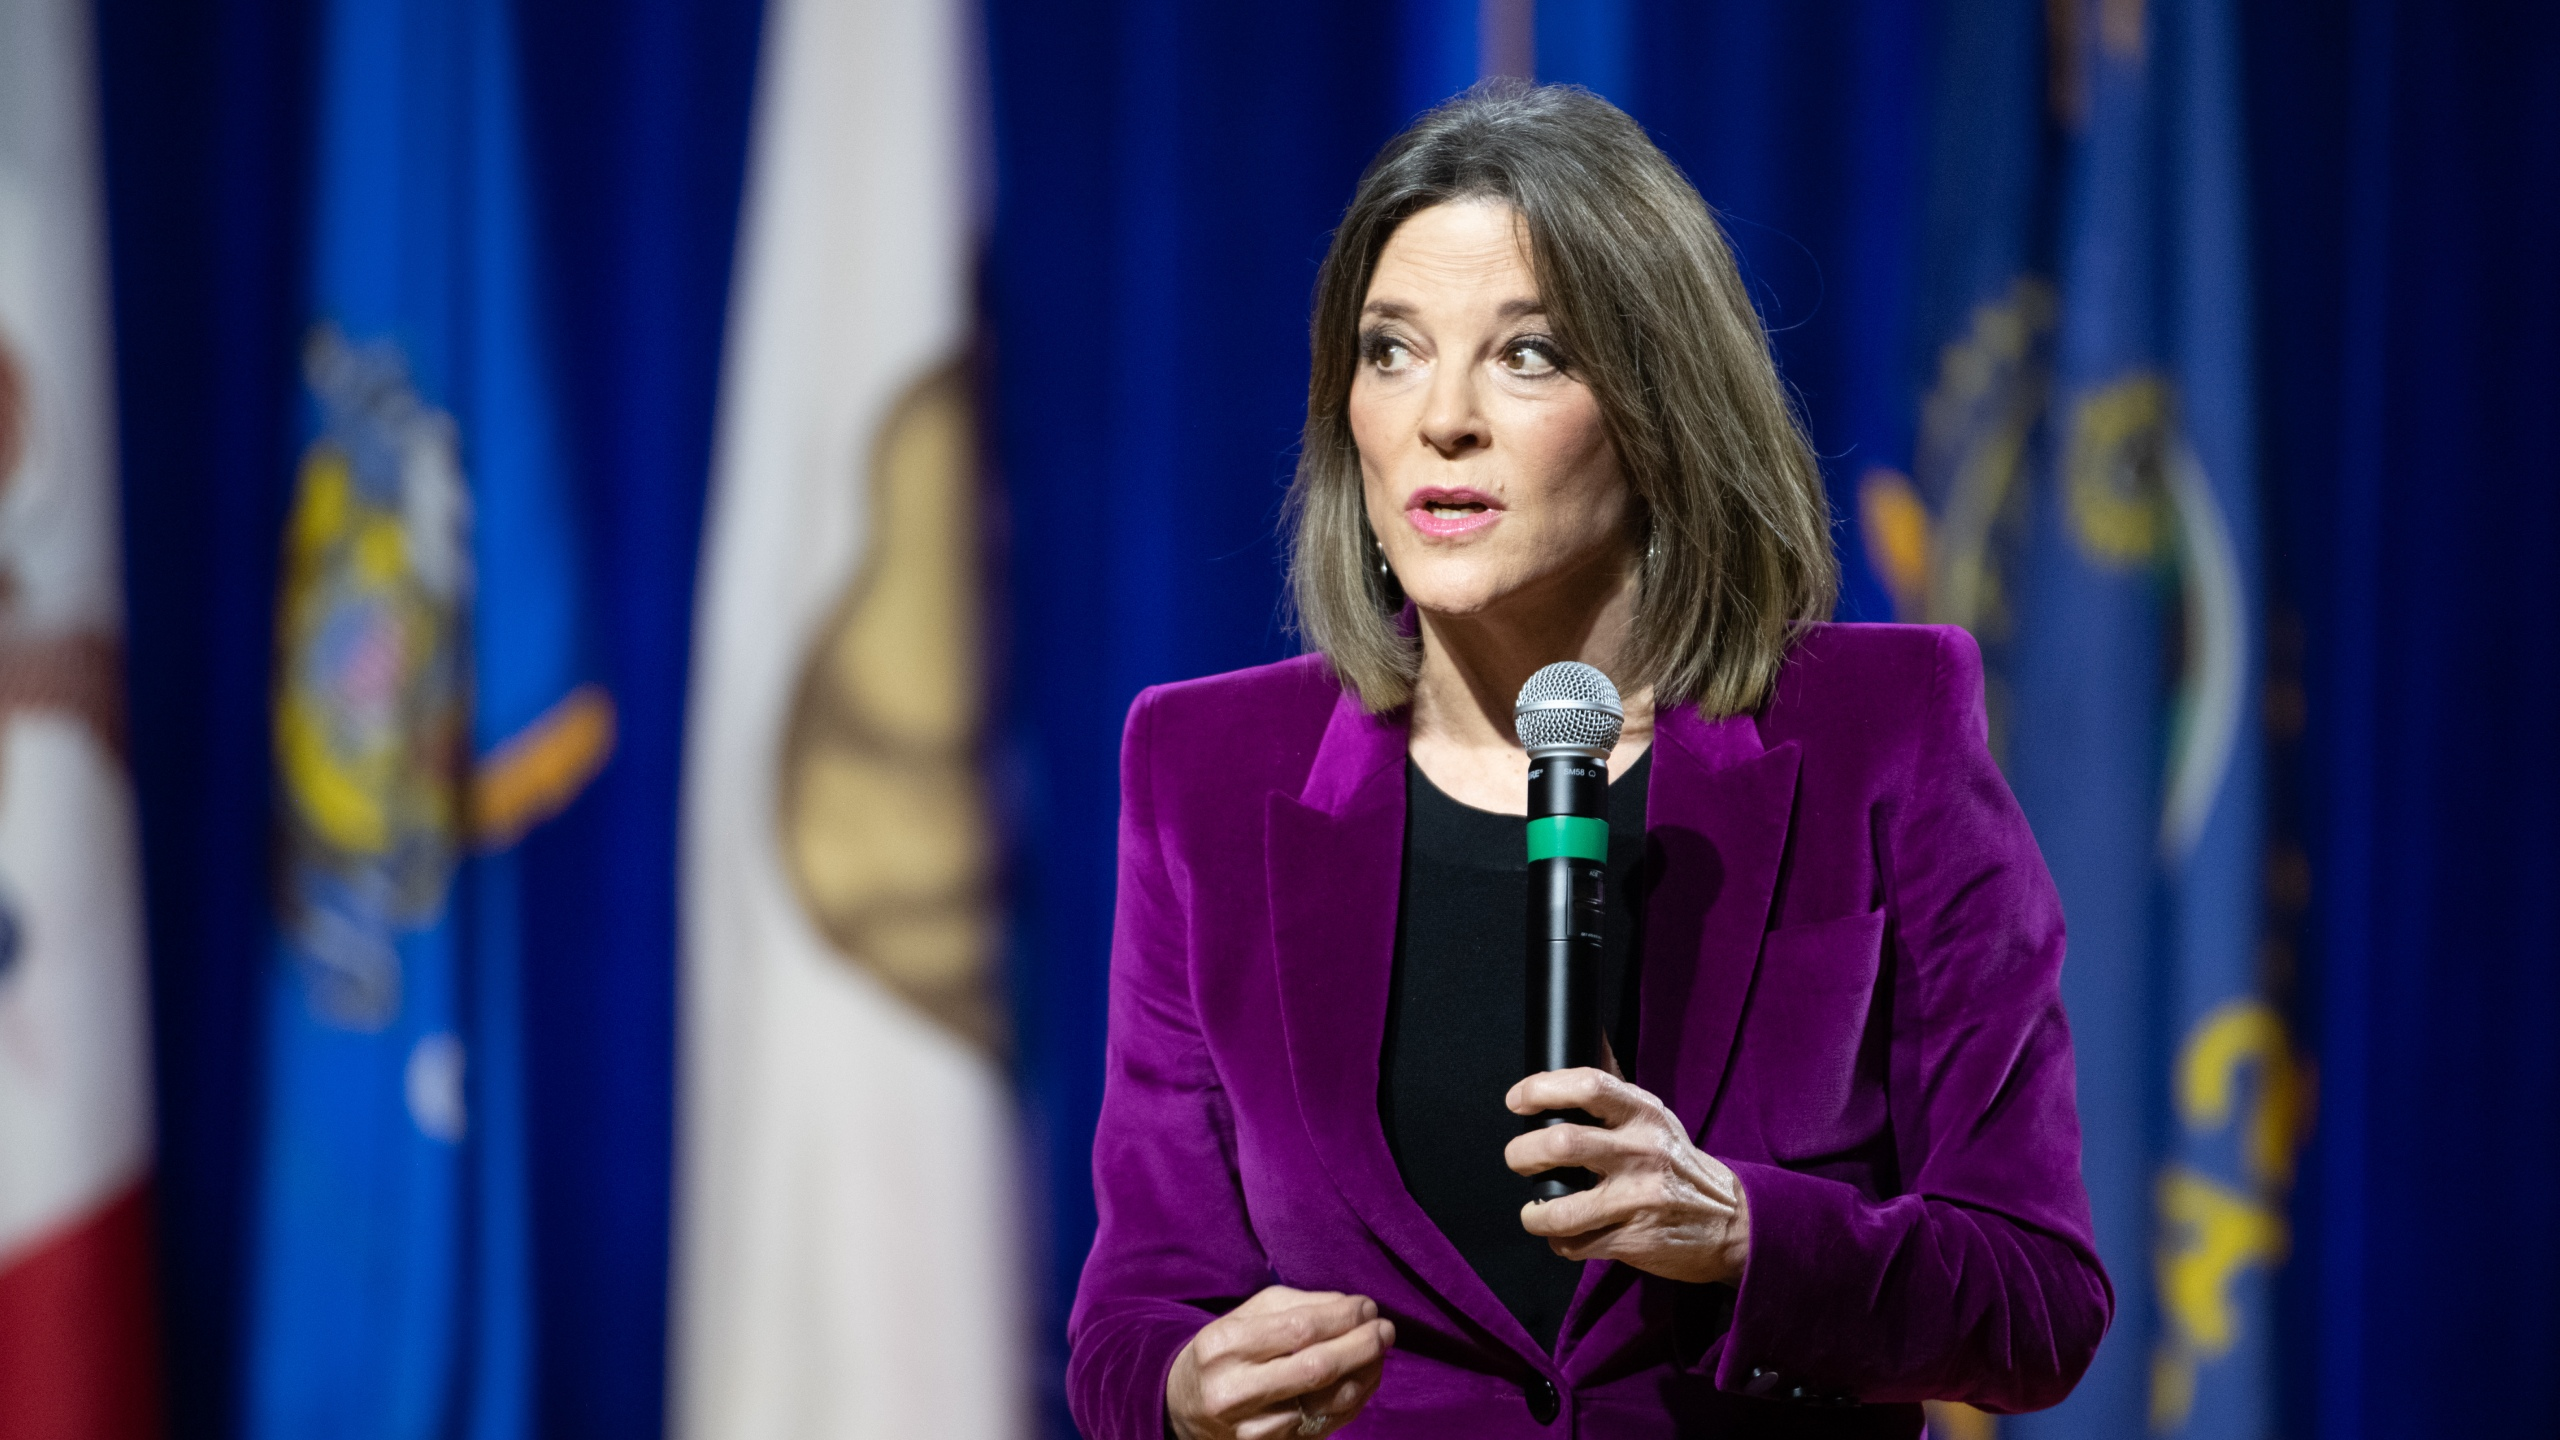 Democratic presidential candidate and author Marianne Williamson addresses the audience at the Environmental Justice Presidential Candidate Forum at South Carolina State University on Nov. 8, 2019. (Credit: Sean Rayford / Getty Images)